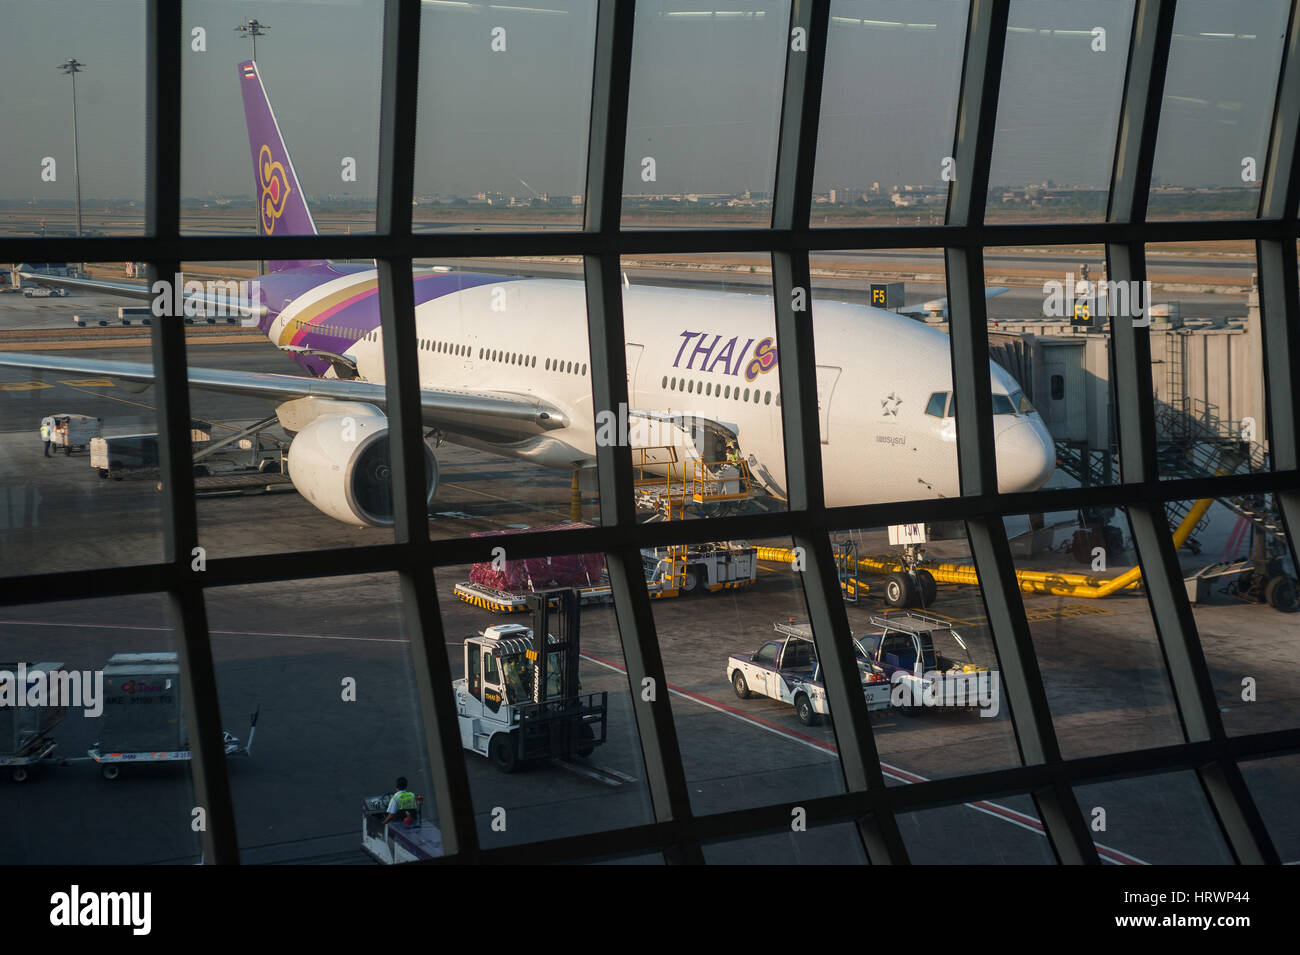 08.02.2017, Bangkok, Thailand, Asia - A Thai Airways passenger plane is parked at a gate at Bangkok's Suvarnabhumi - Stock Image